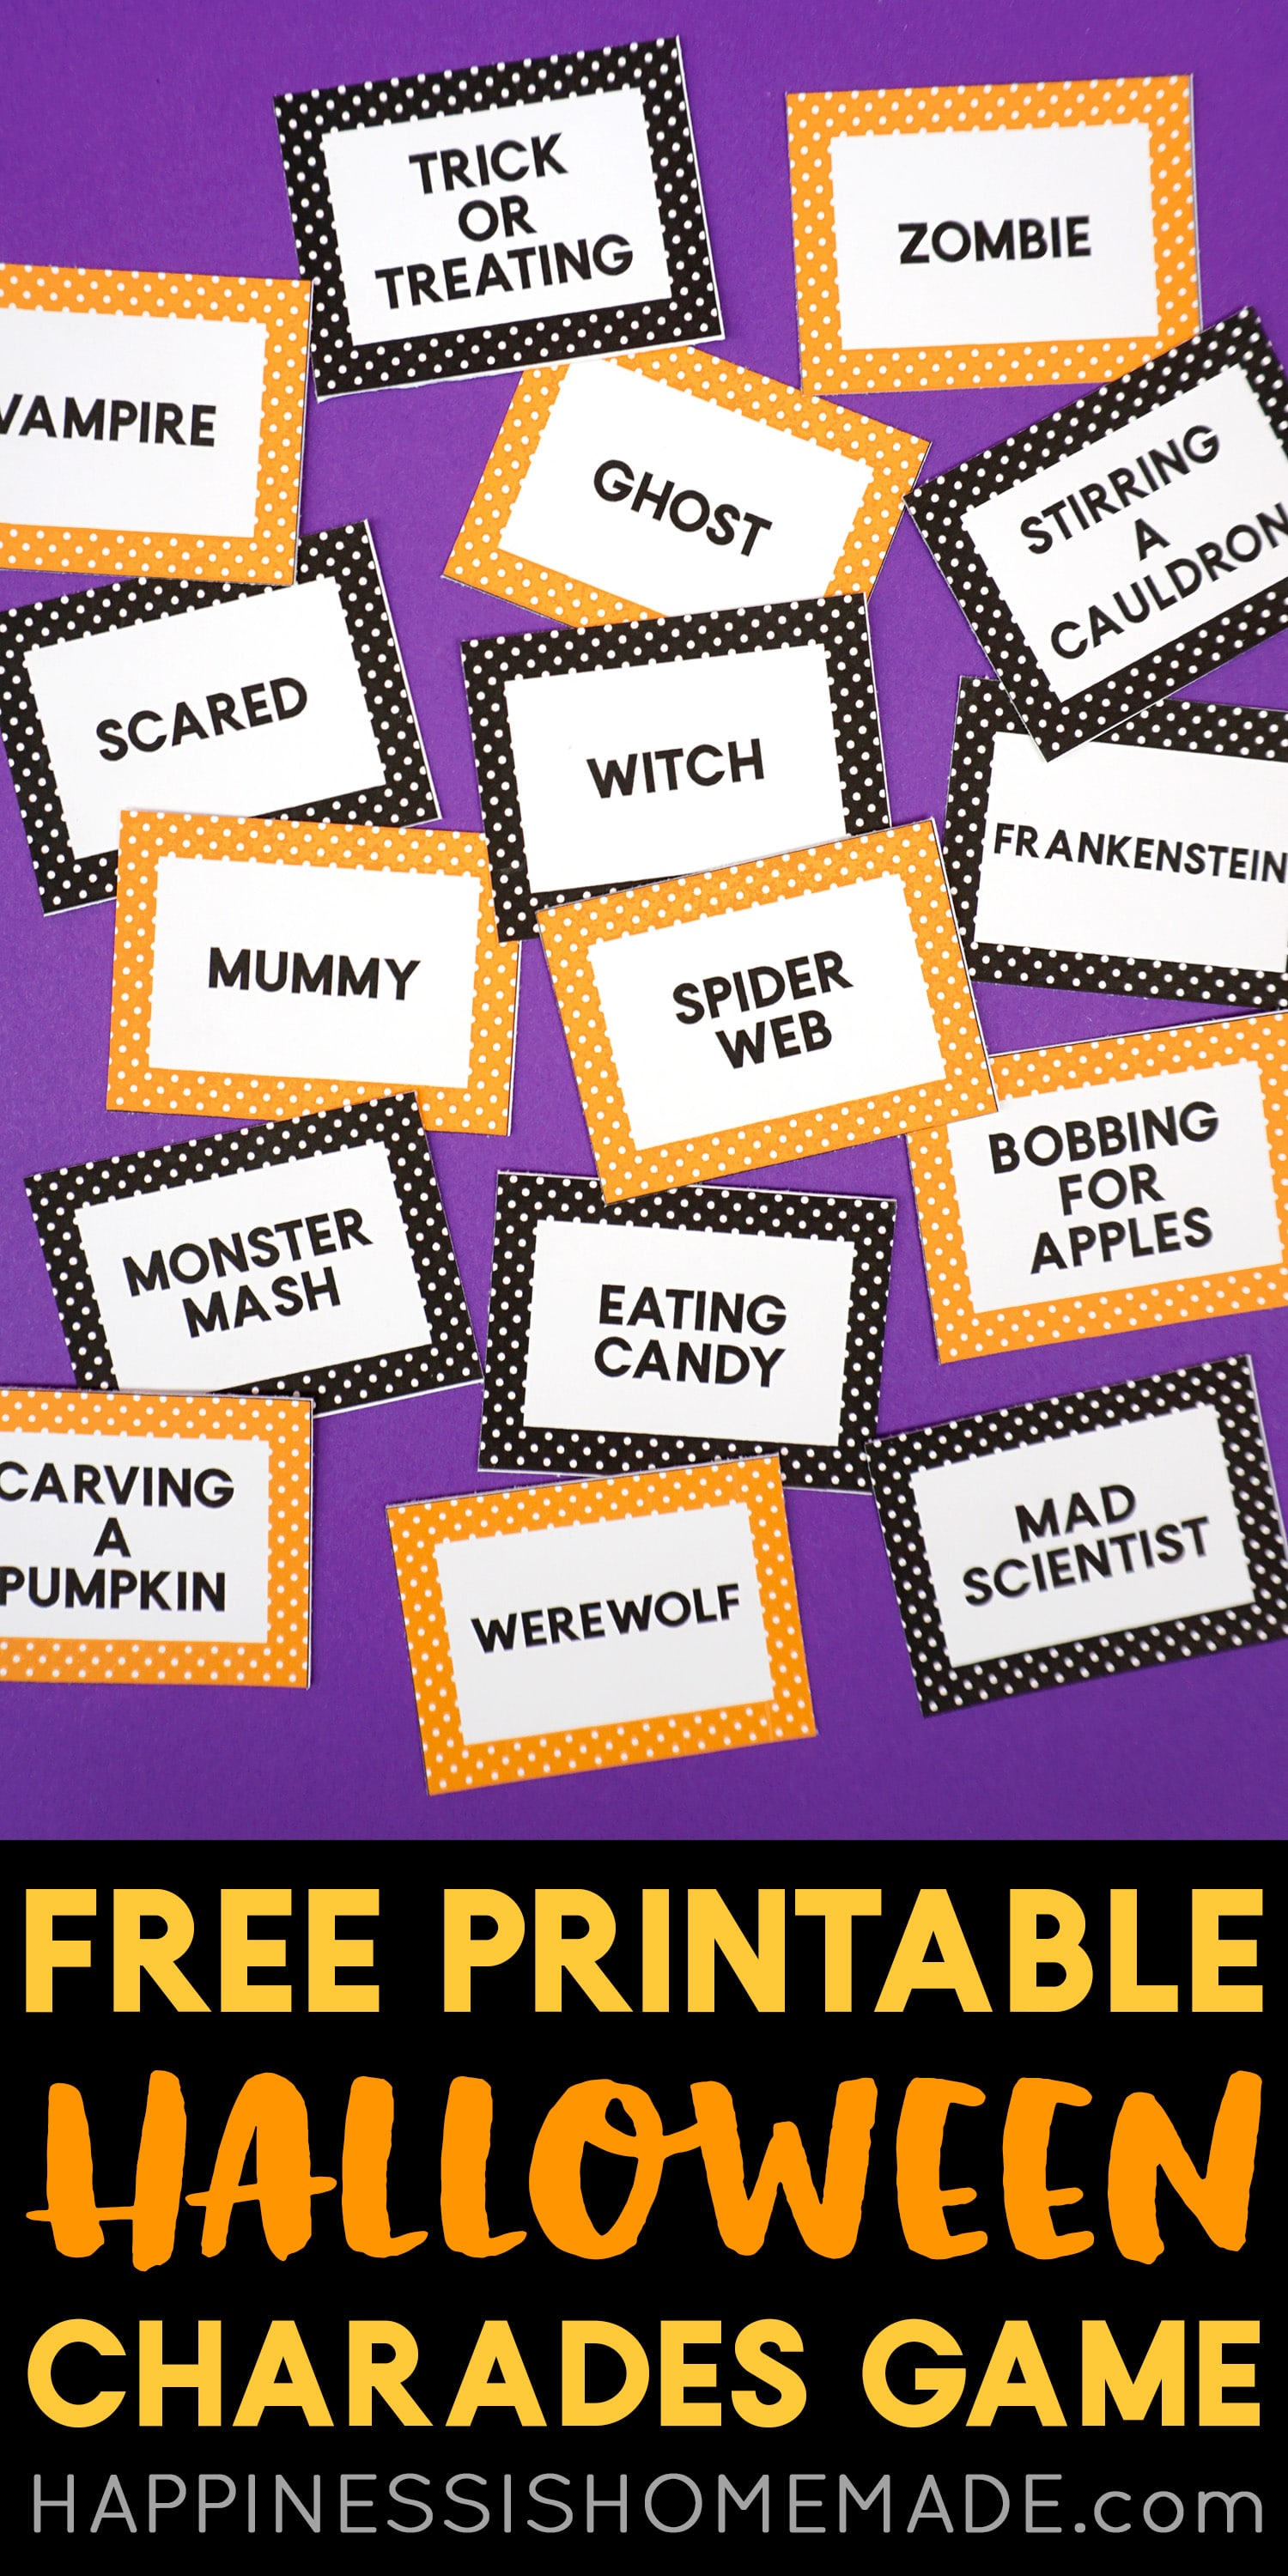 Printable Halloween Charades Game Cards - These fun printable Halloween Charades Game Cards are a ton of fun! They're also great for Pictionary, Headbanz, and more! A silly and fun Halloween game for all ages! via @hihomemadeblog